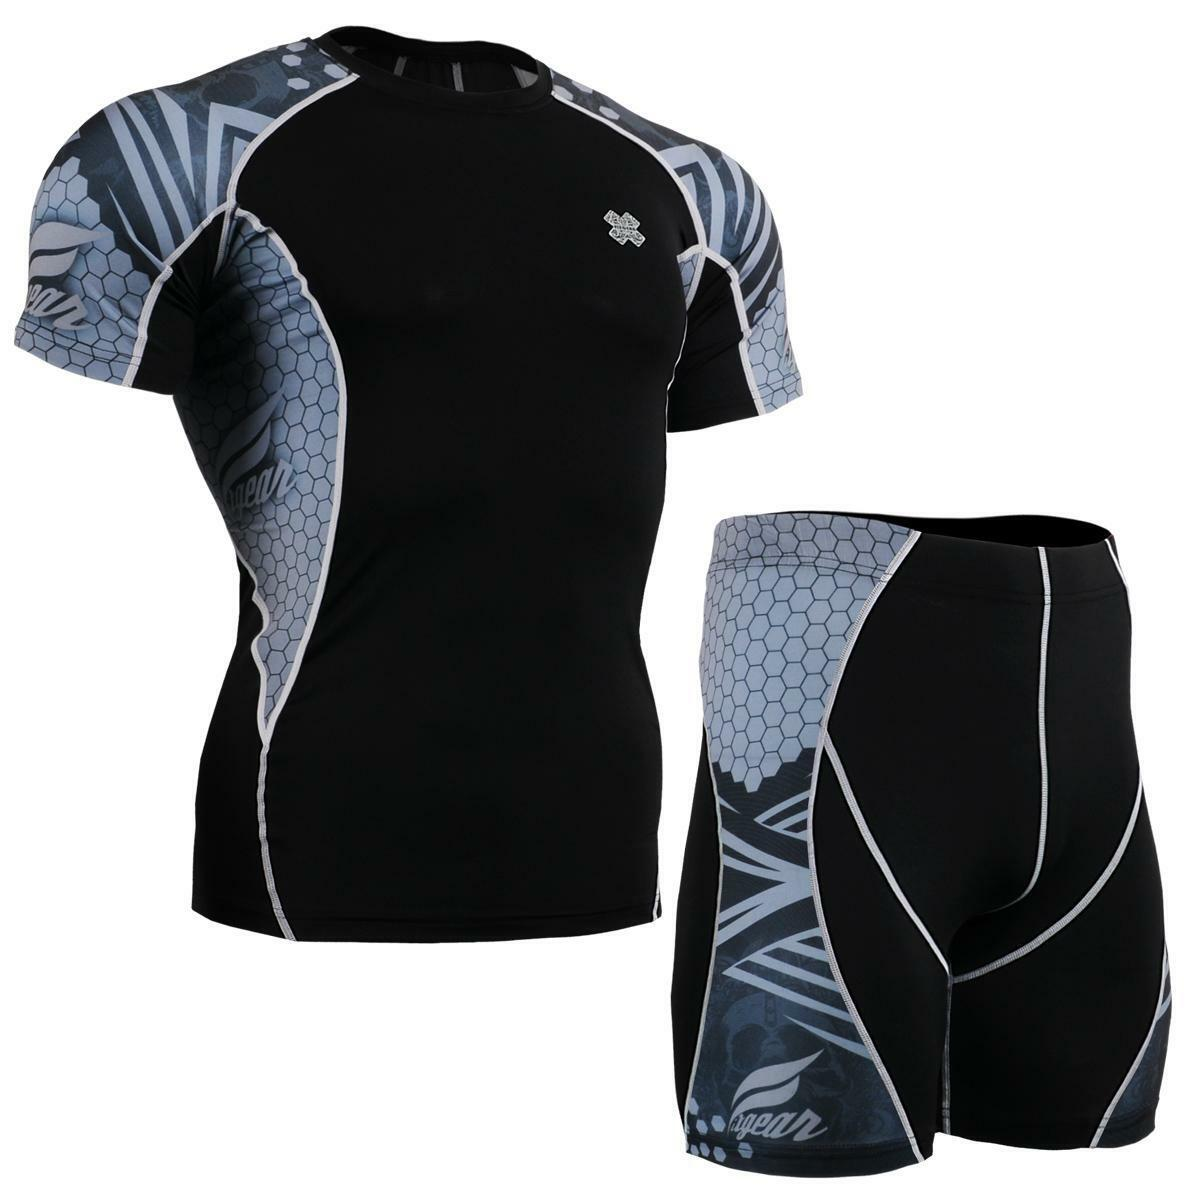 FIXGEAR C2S P2S-B41 SET Compression Shirts & Shorts Skin-tight MMA Workout Gym